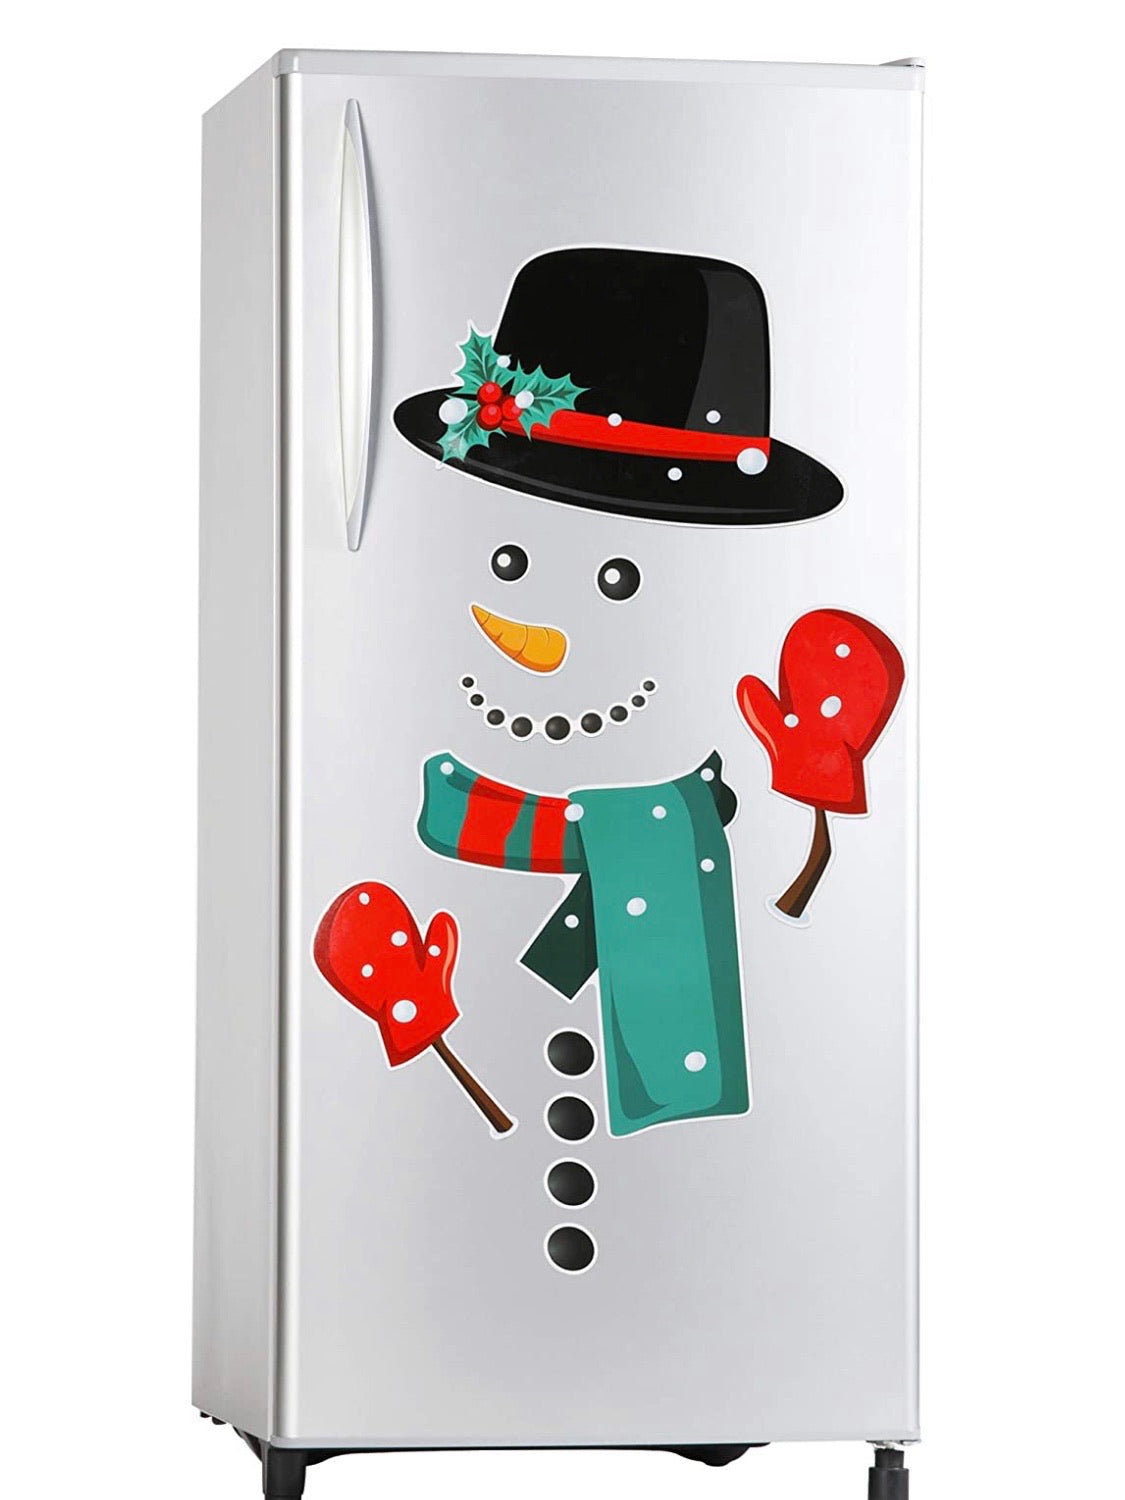 Snowman Refrigerator Magnets